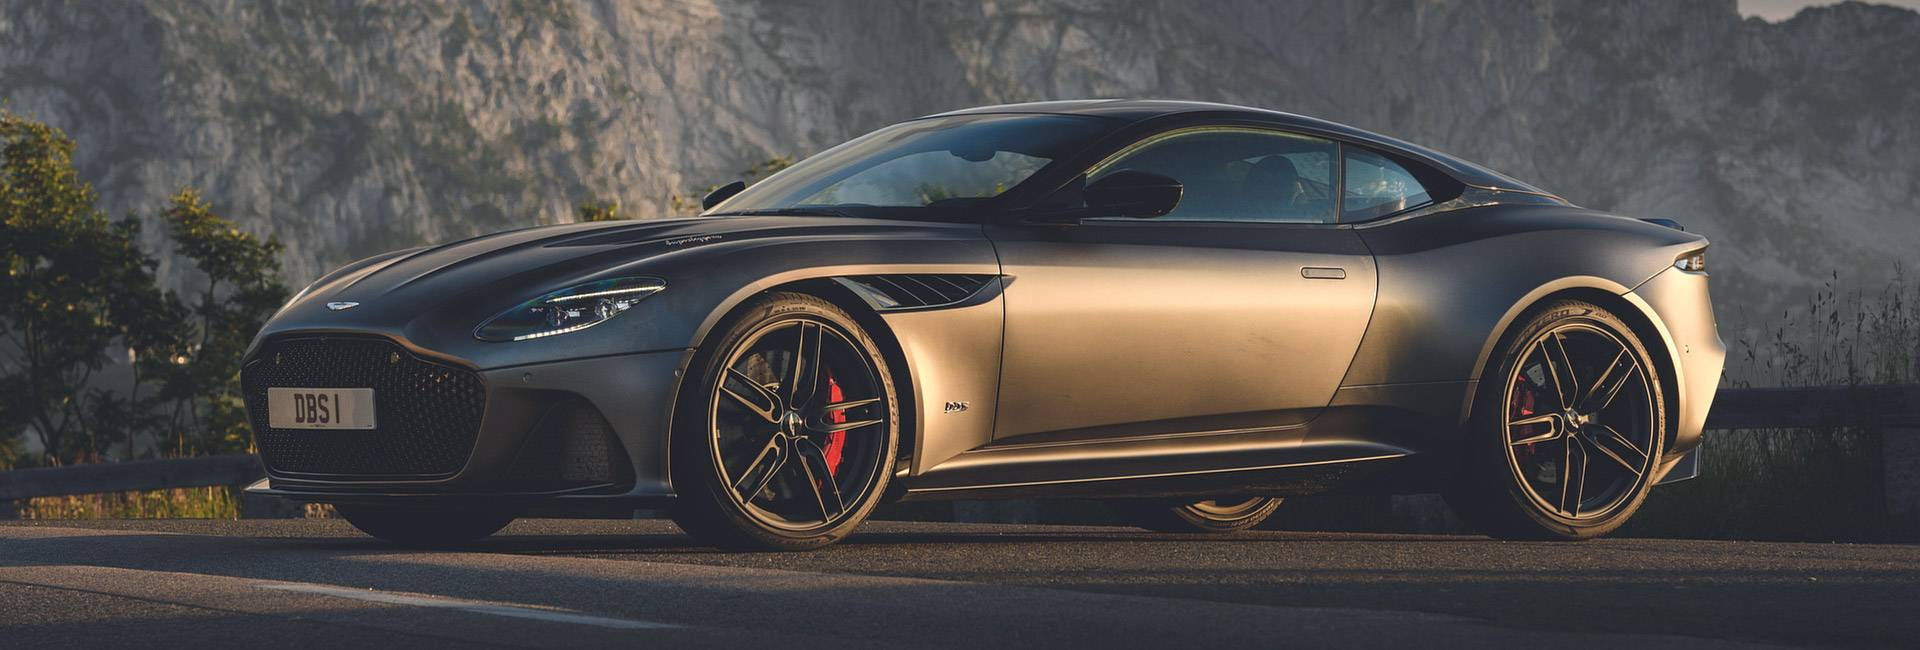 Aston Martin Hire Rent One Of Our Beautiful Astons Largest Fleet